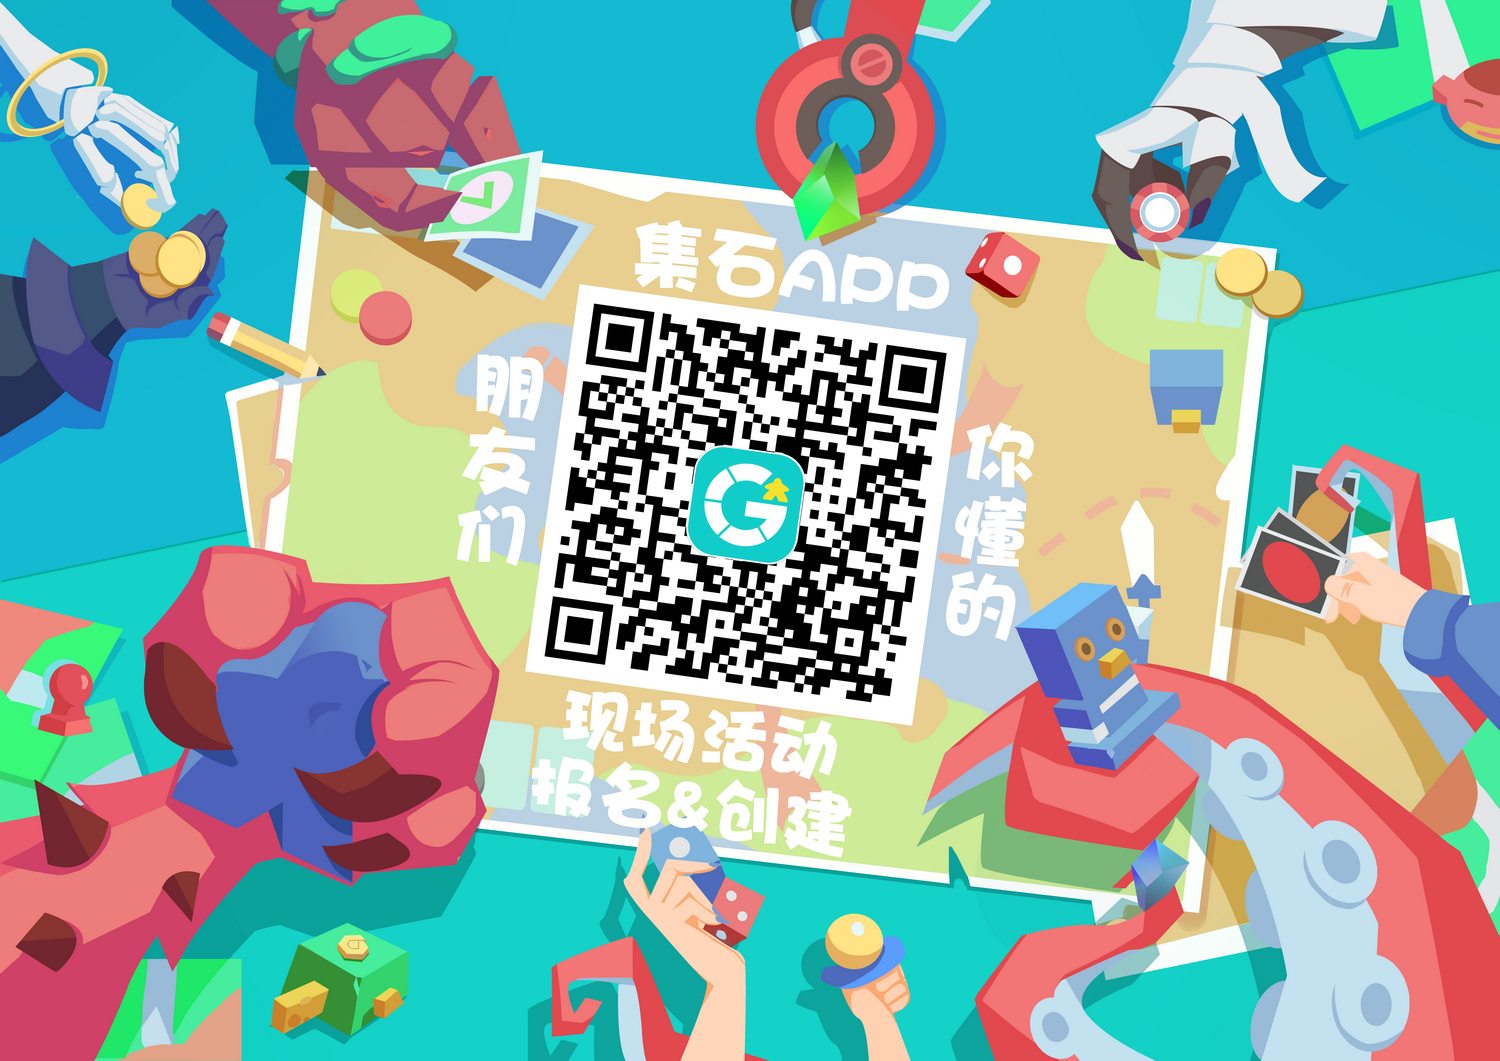 qrcode-1500.png